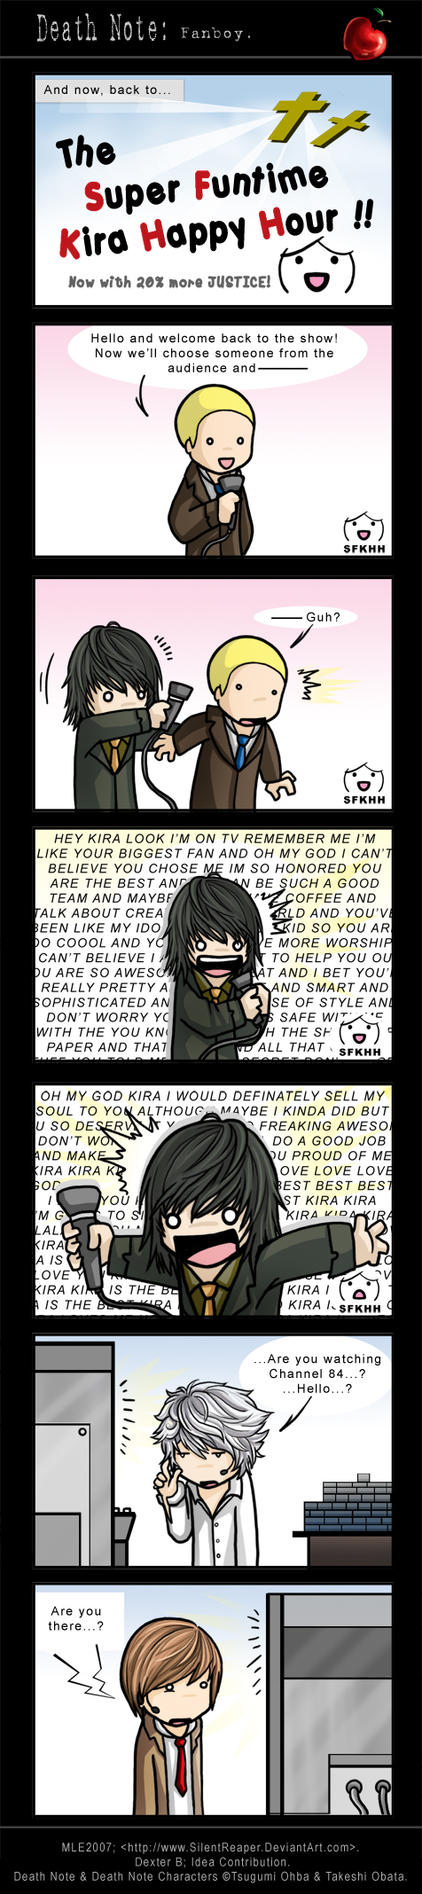 Death Note: Fanboy. by SilentReaper